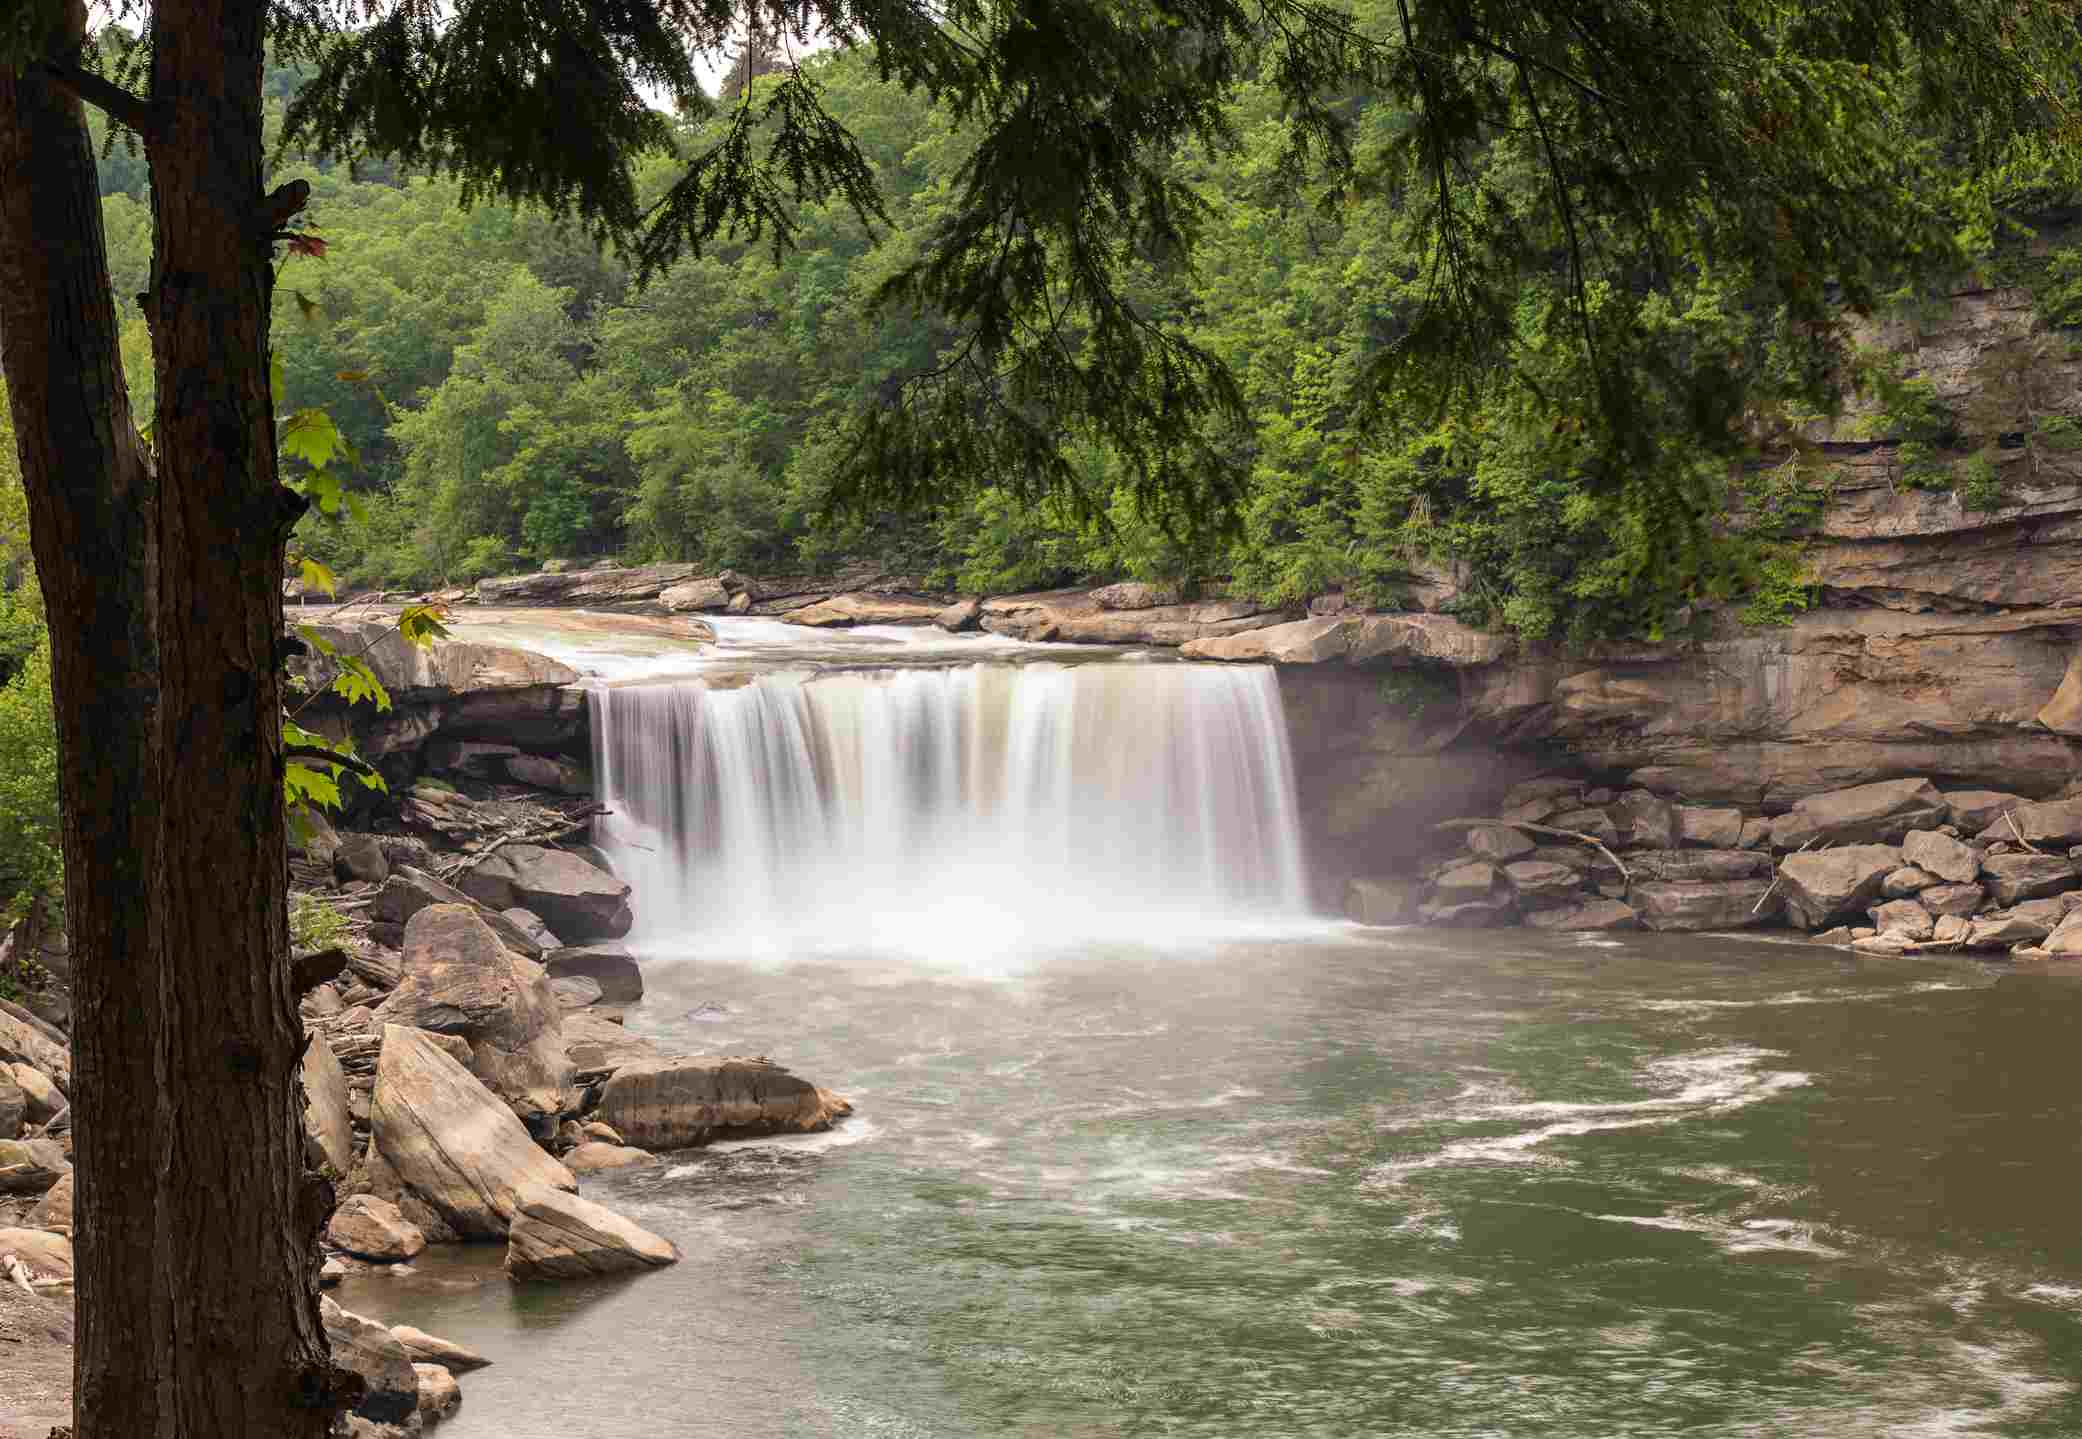 The waterfall at Cumberland Falls State Park on the Cumberland River.